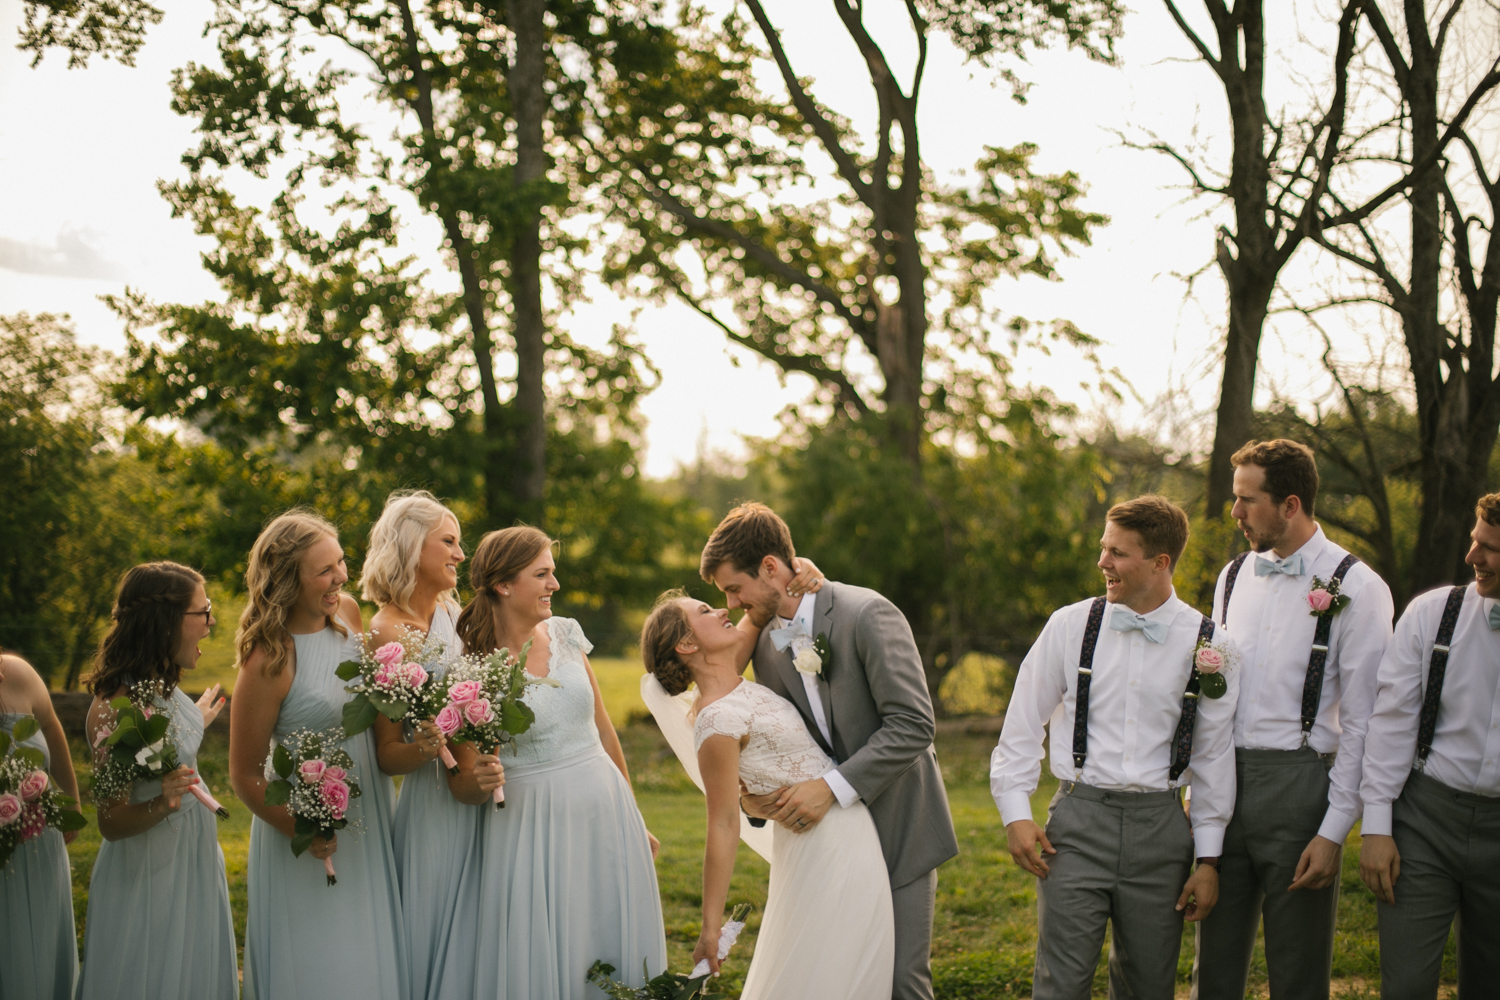 2019.06.01_CraskWedding_Starks-139.jpg